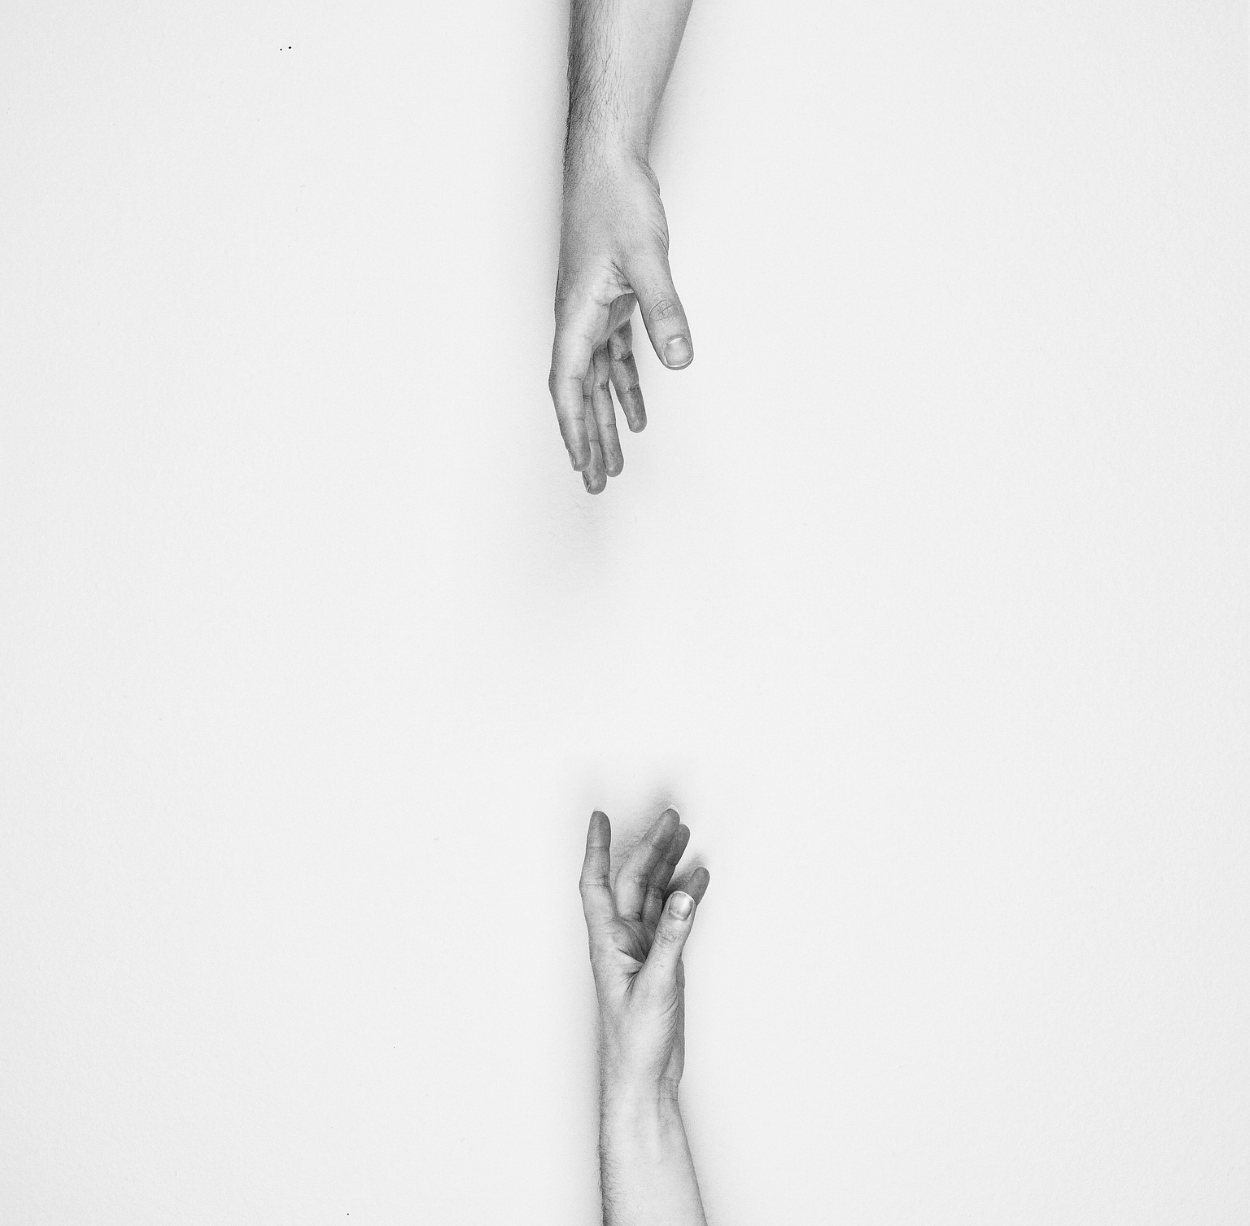 people-hands-reaching-2577986_1250.png